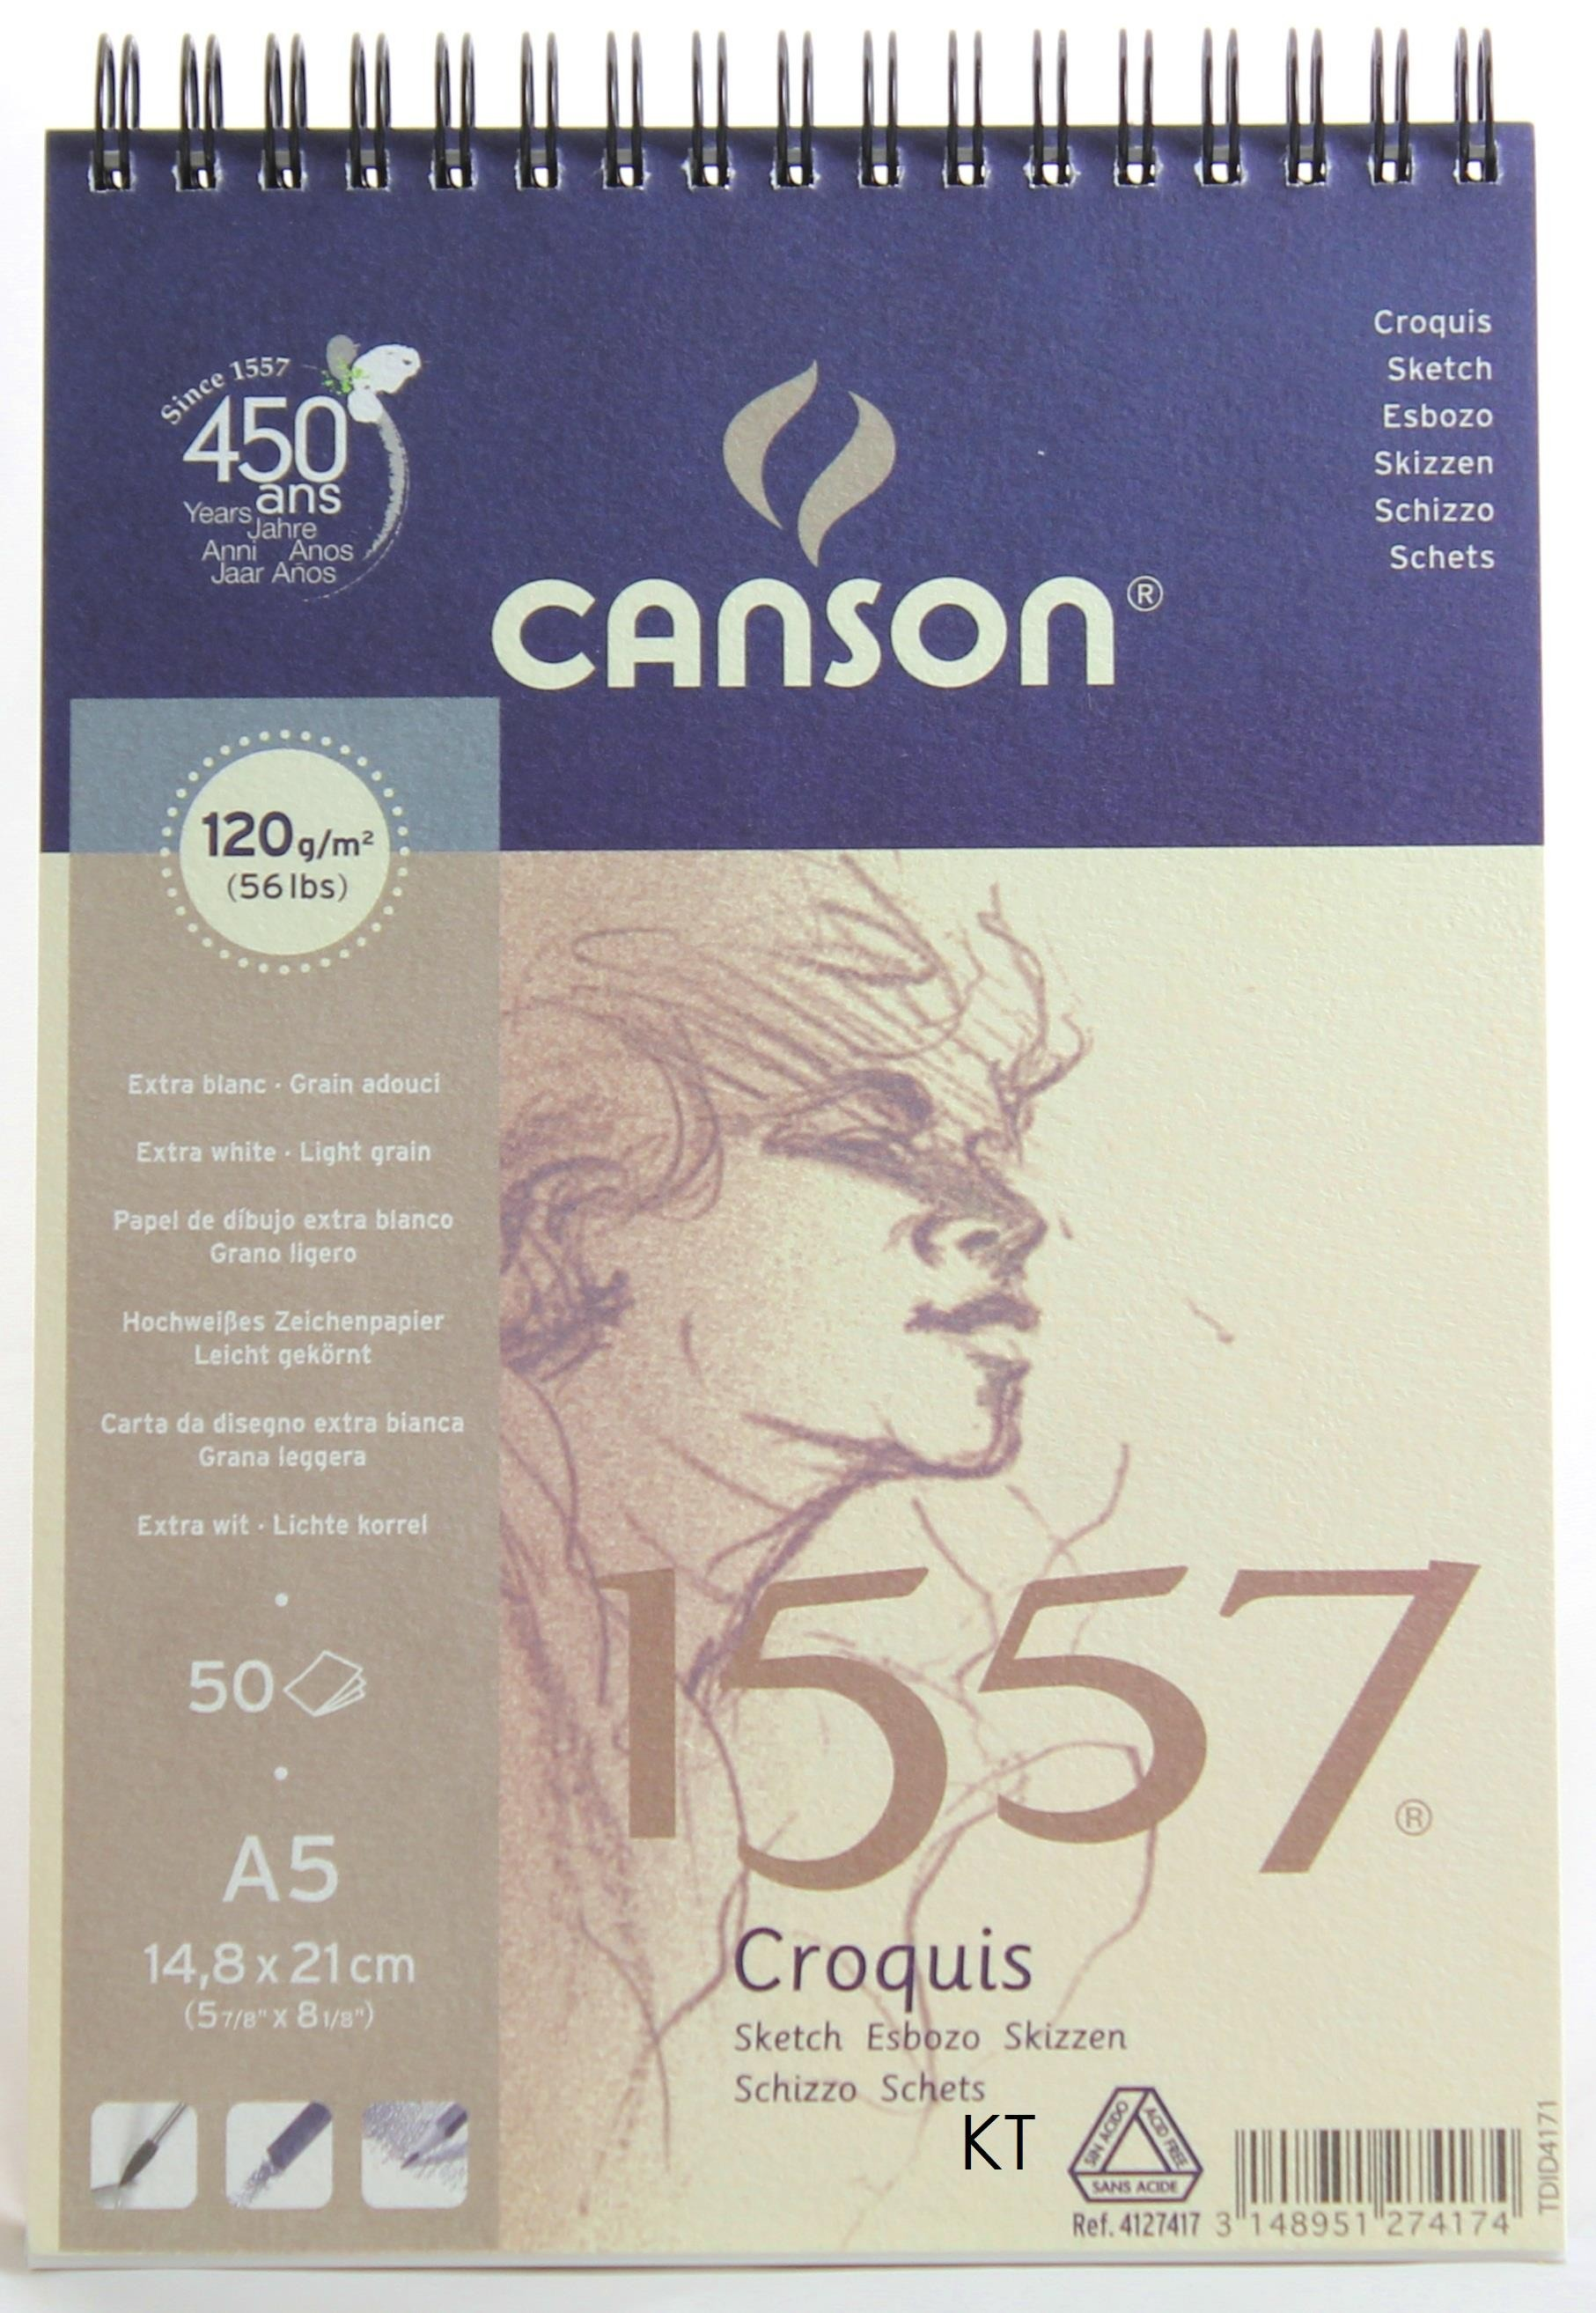 Canson 1557 Spiral Bound Pad - A5 Size 120gsm 50 sheets extra white light grain